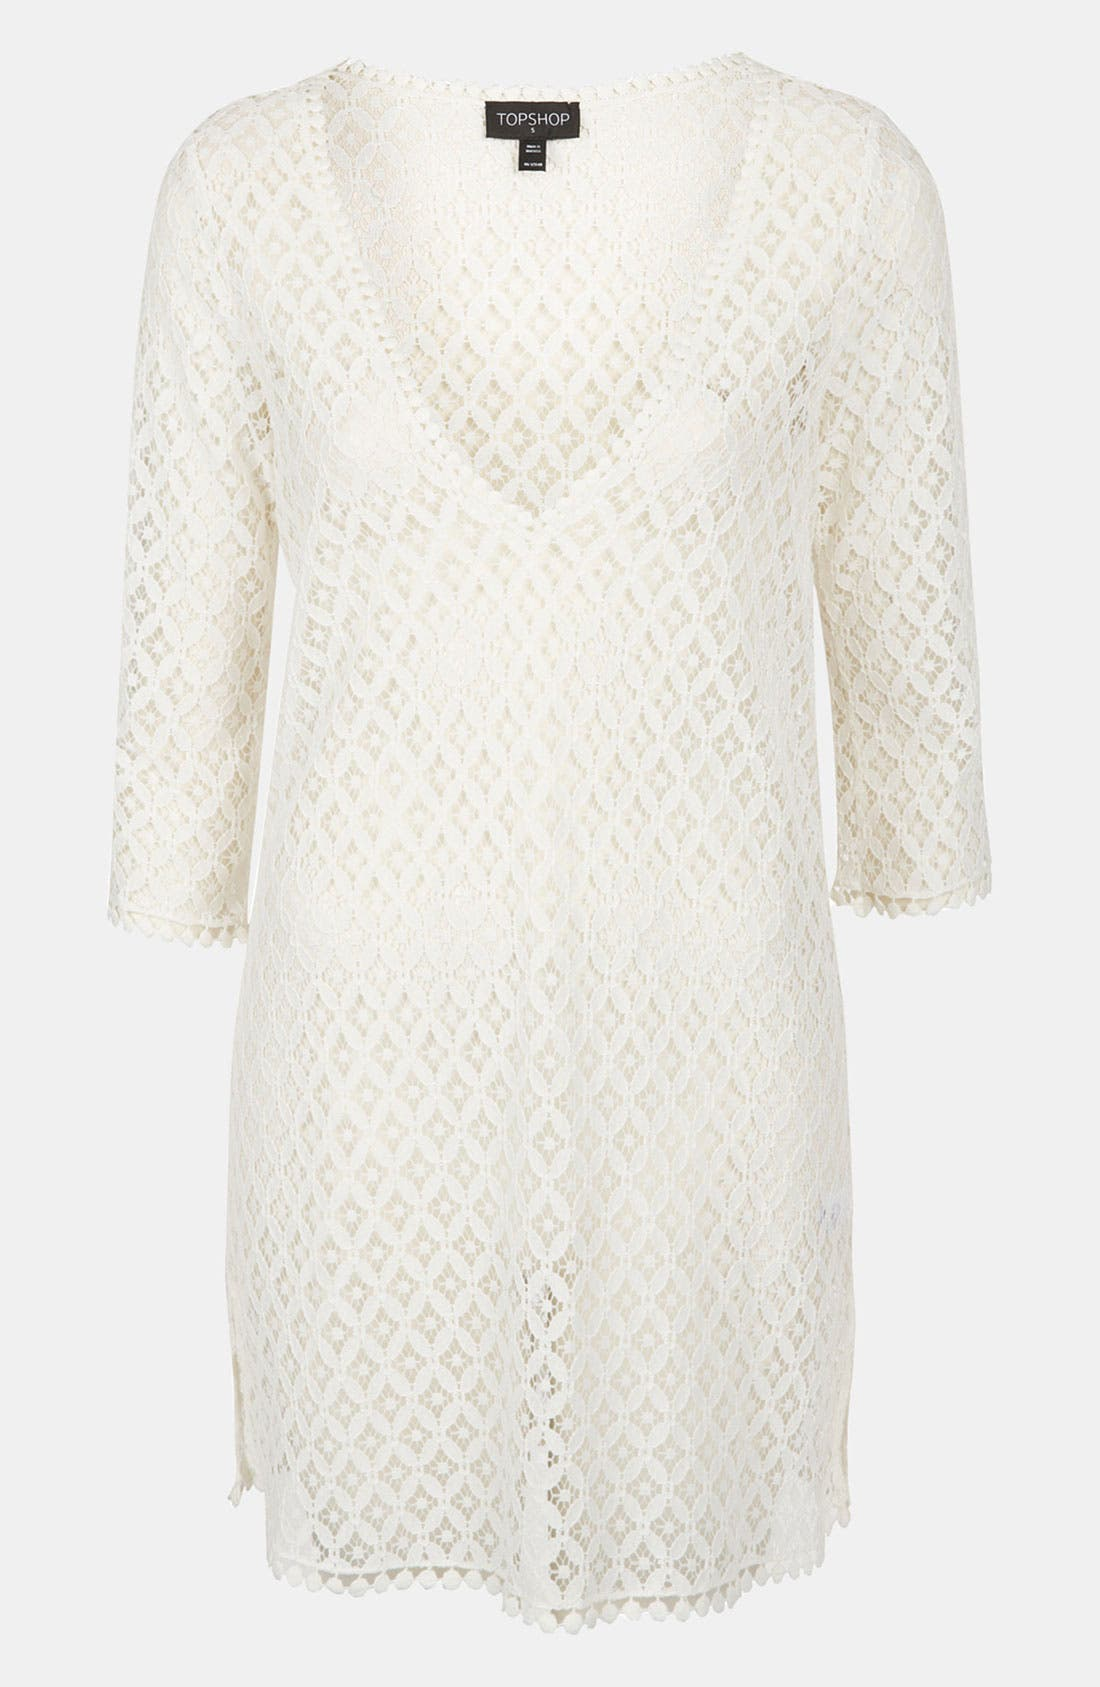 Main Image - Topshop 'Lizzie' Lace Cover-Up